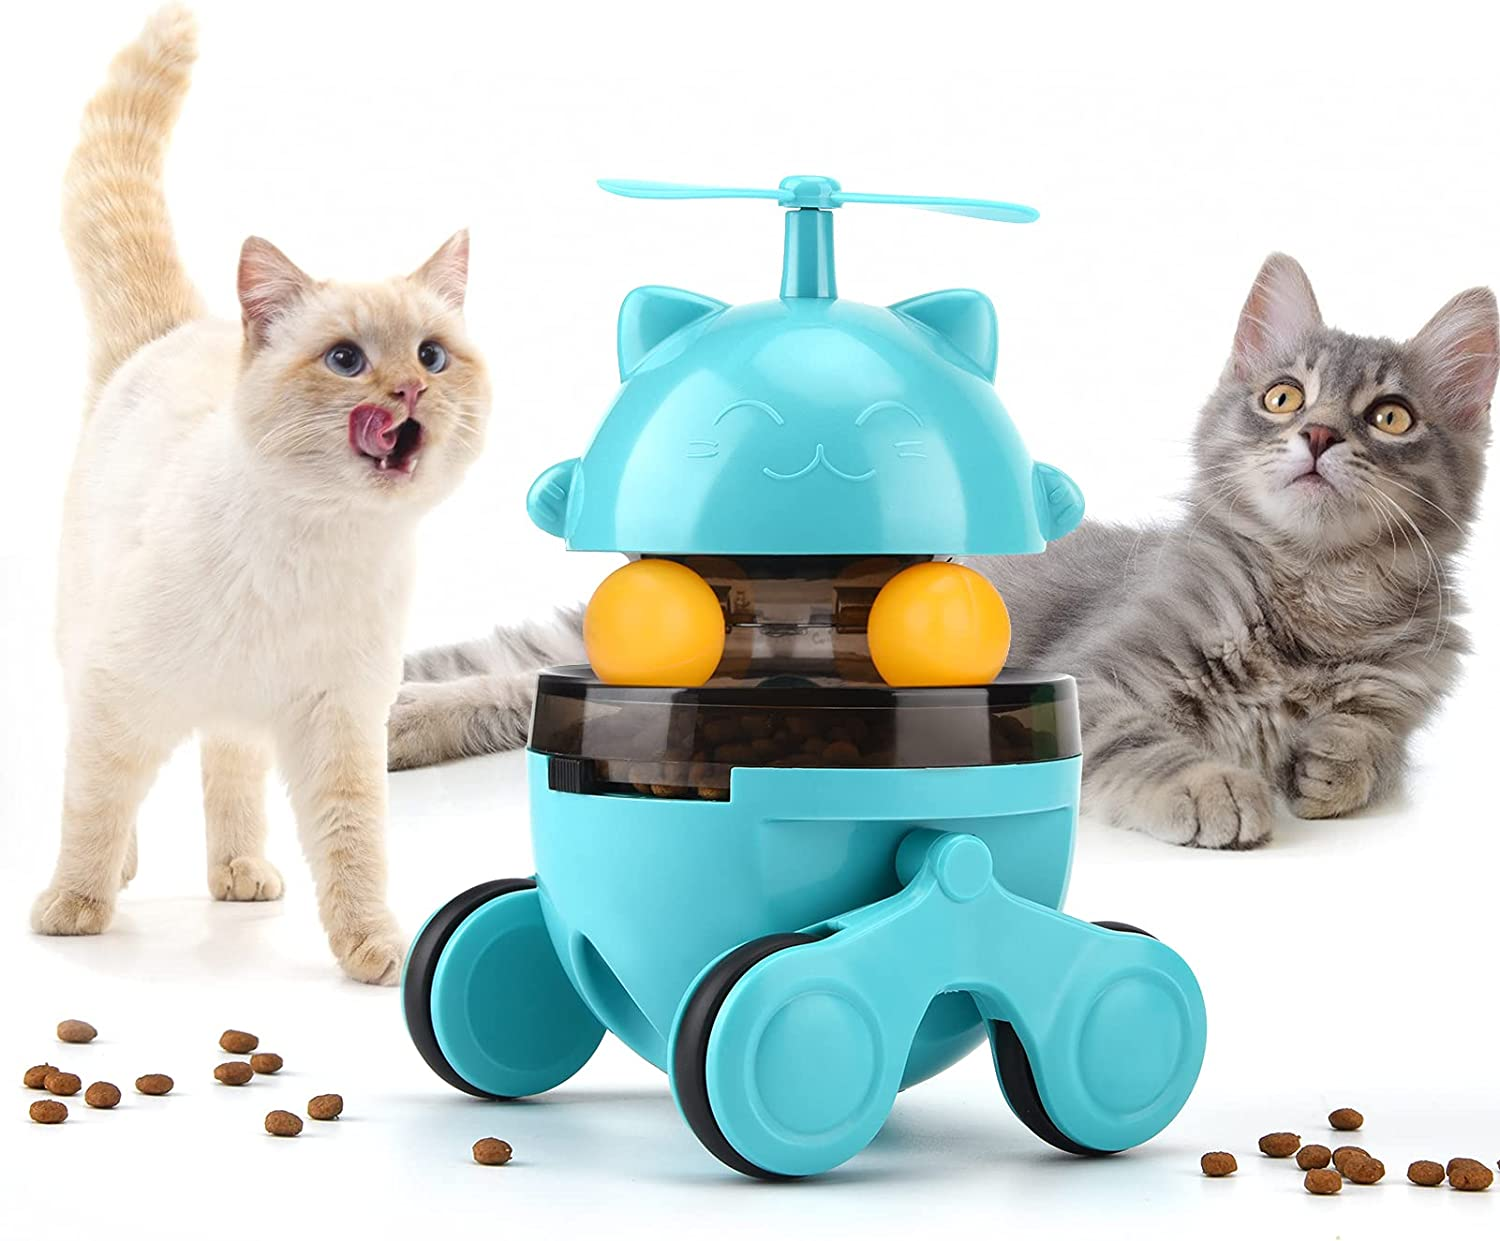 Auidy_6TXD Tumbler Interactive cat Sacramento Mall Turntable Toy Manufacturer OFFicial shop Cats Foraging